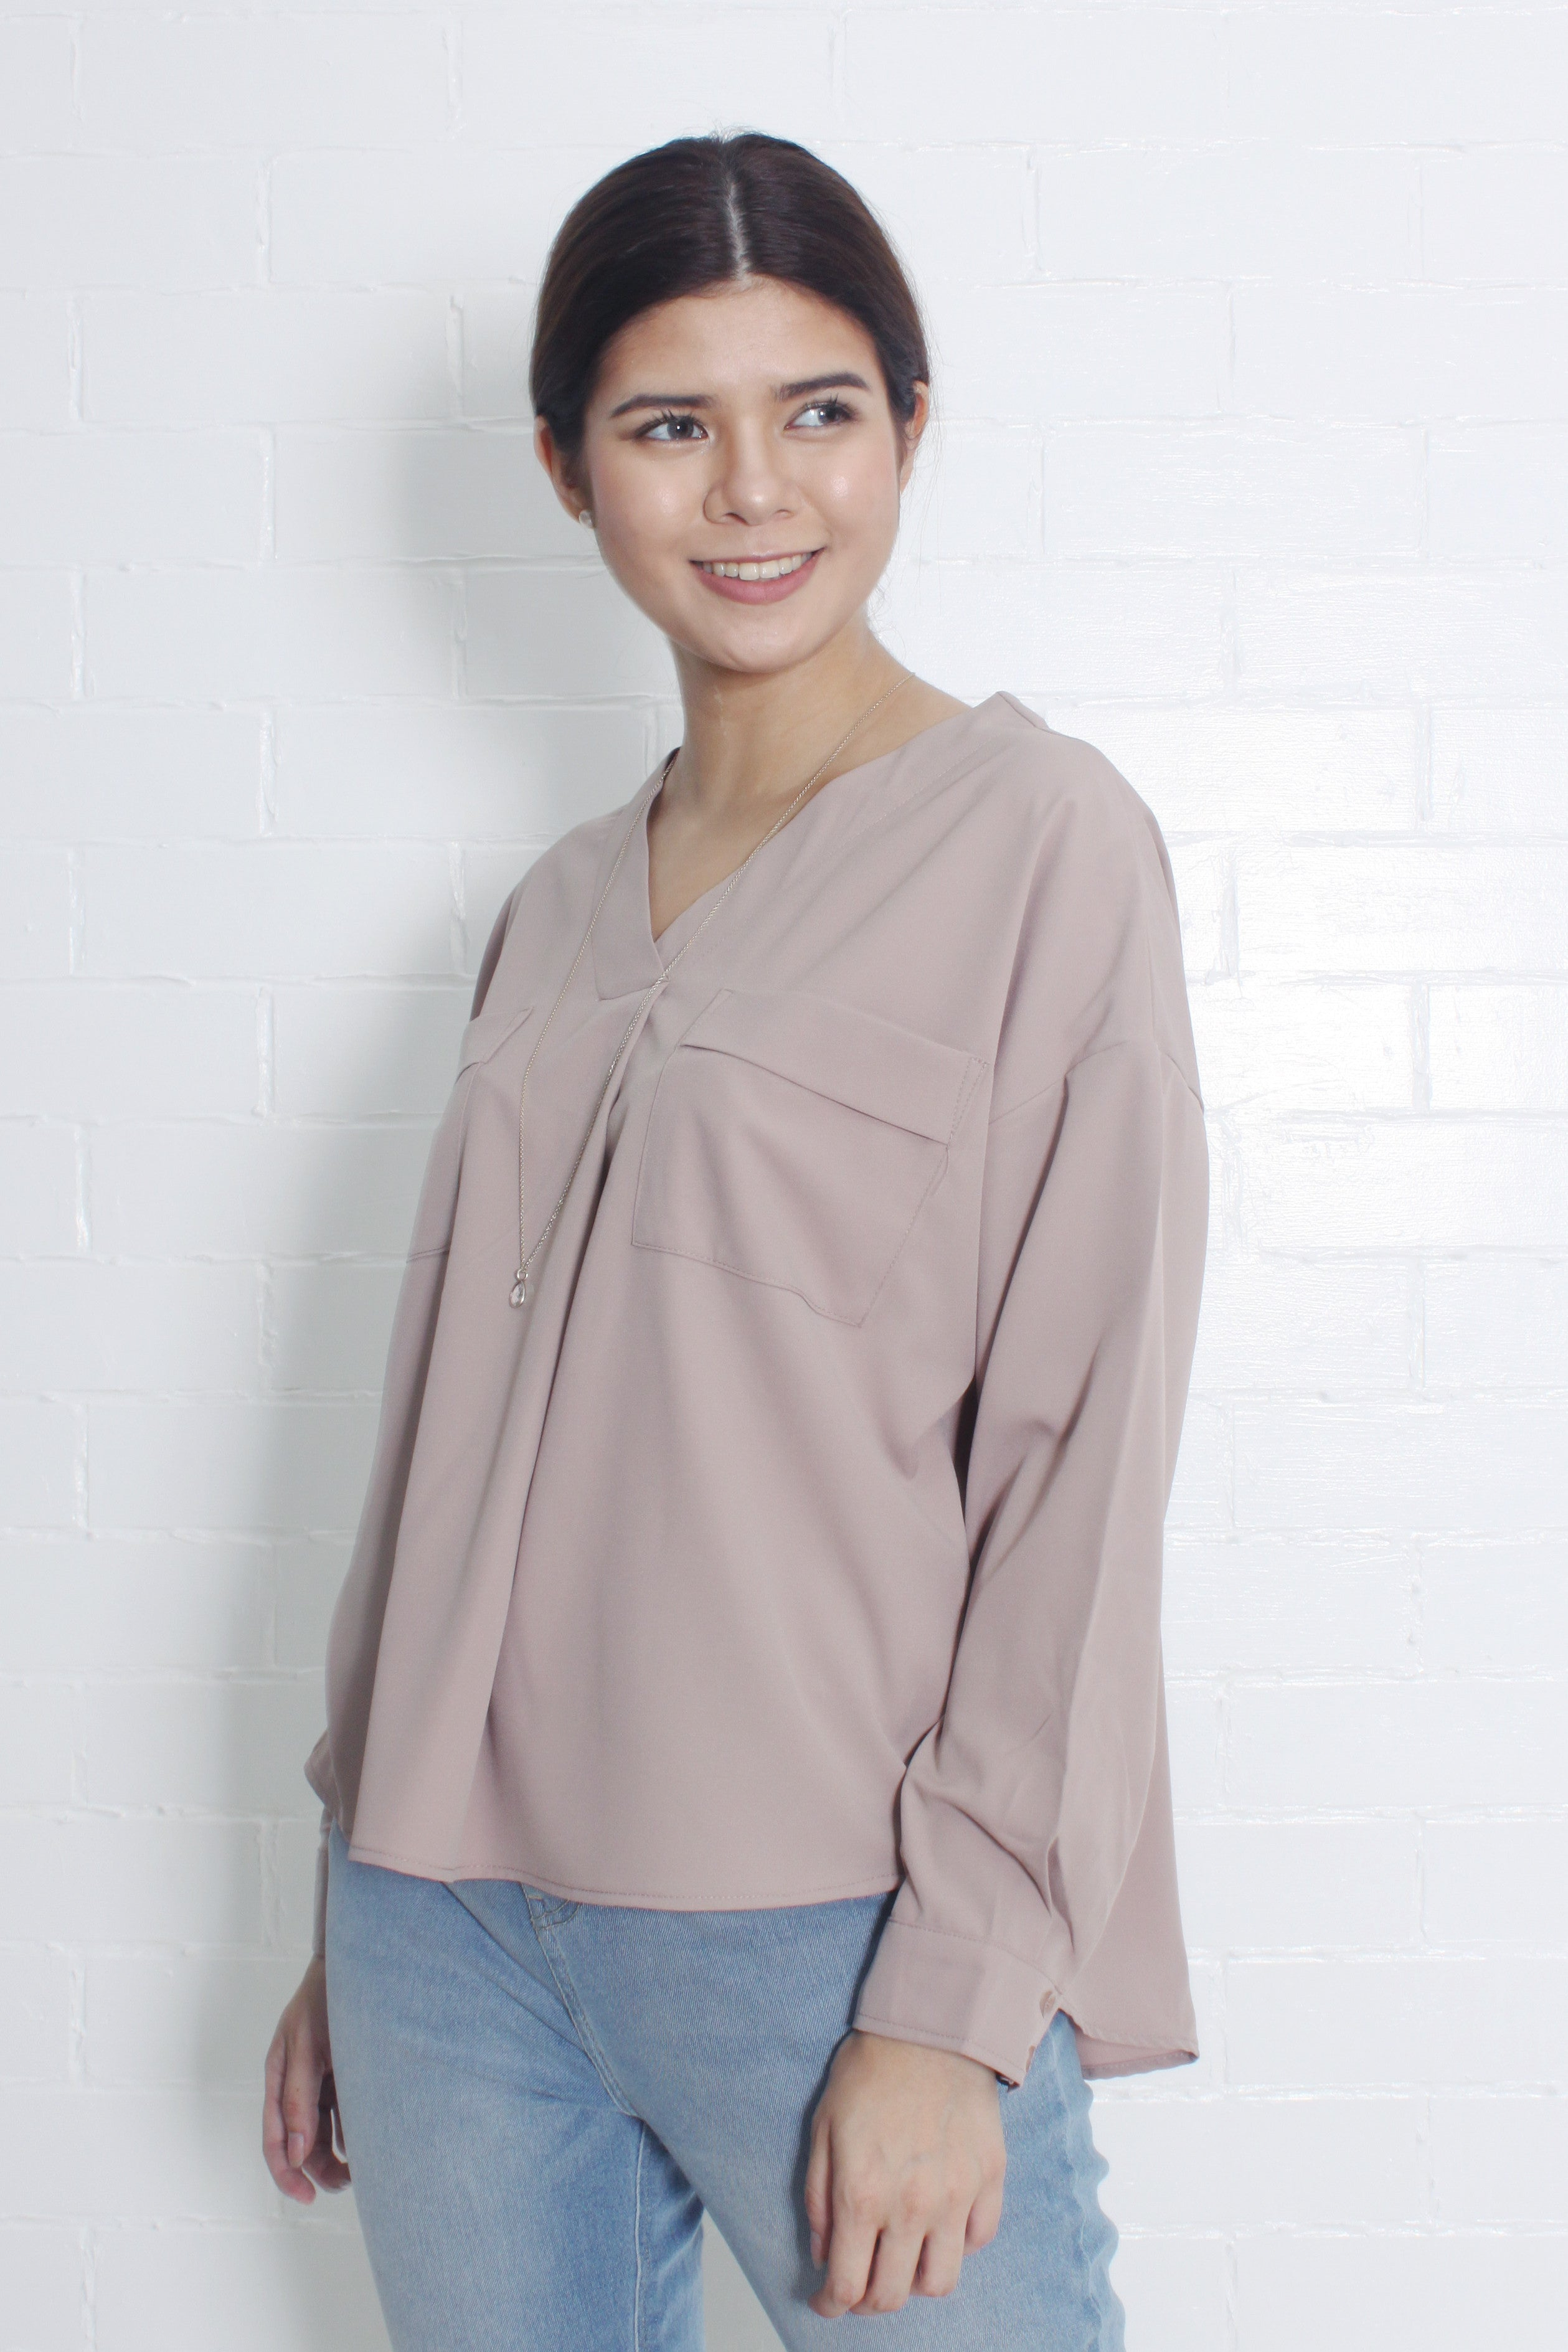 V-Neck Blouse with Front Pockets in Taupe